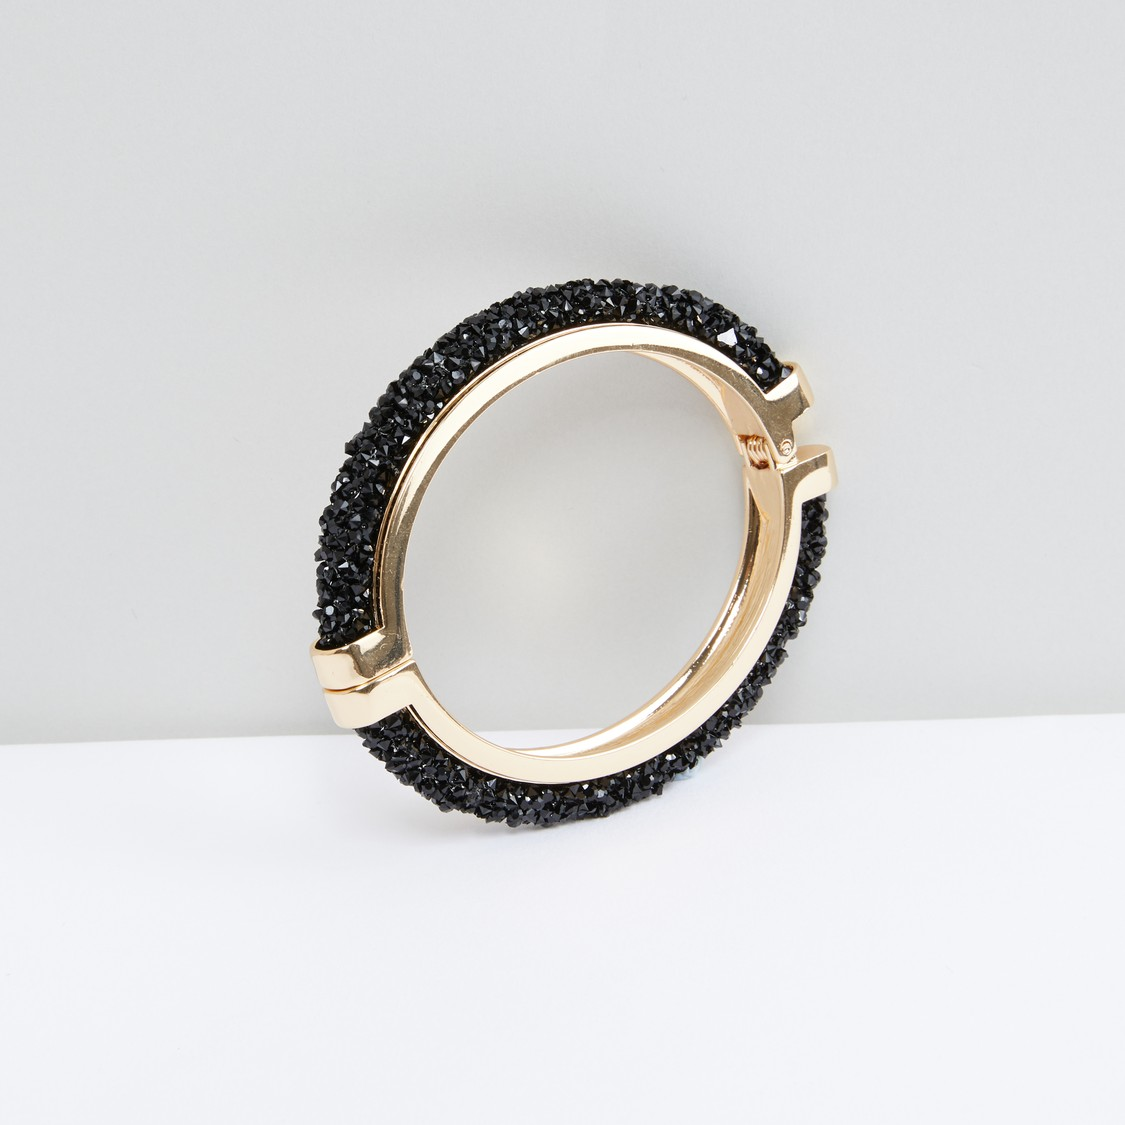 Studded Bangle Bracelet with Spring Closure